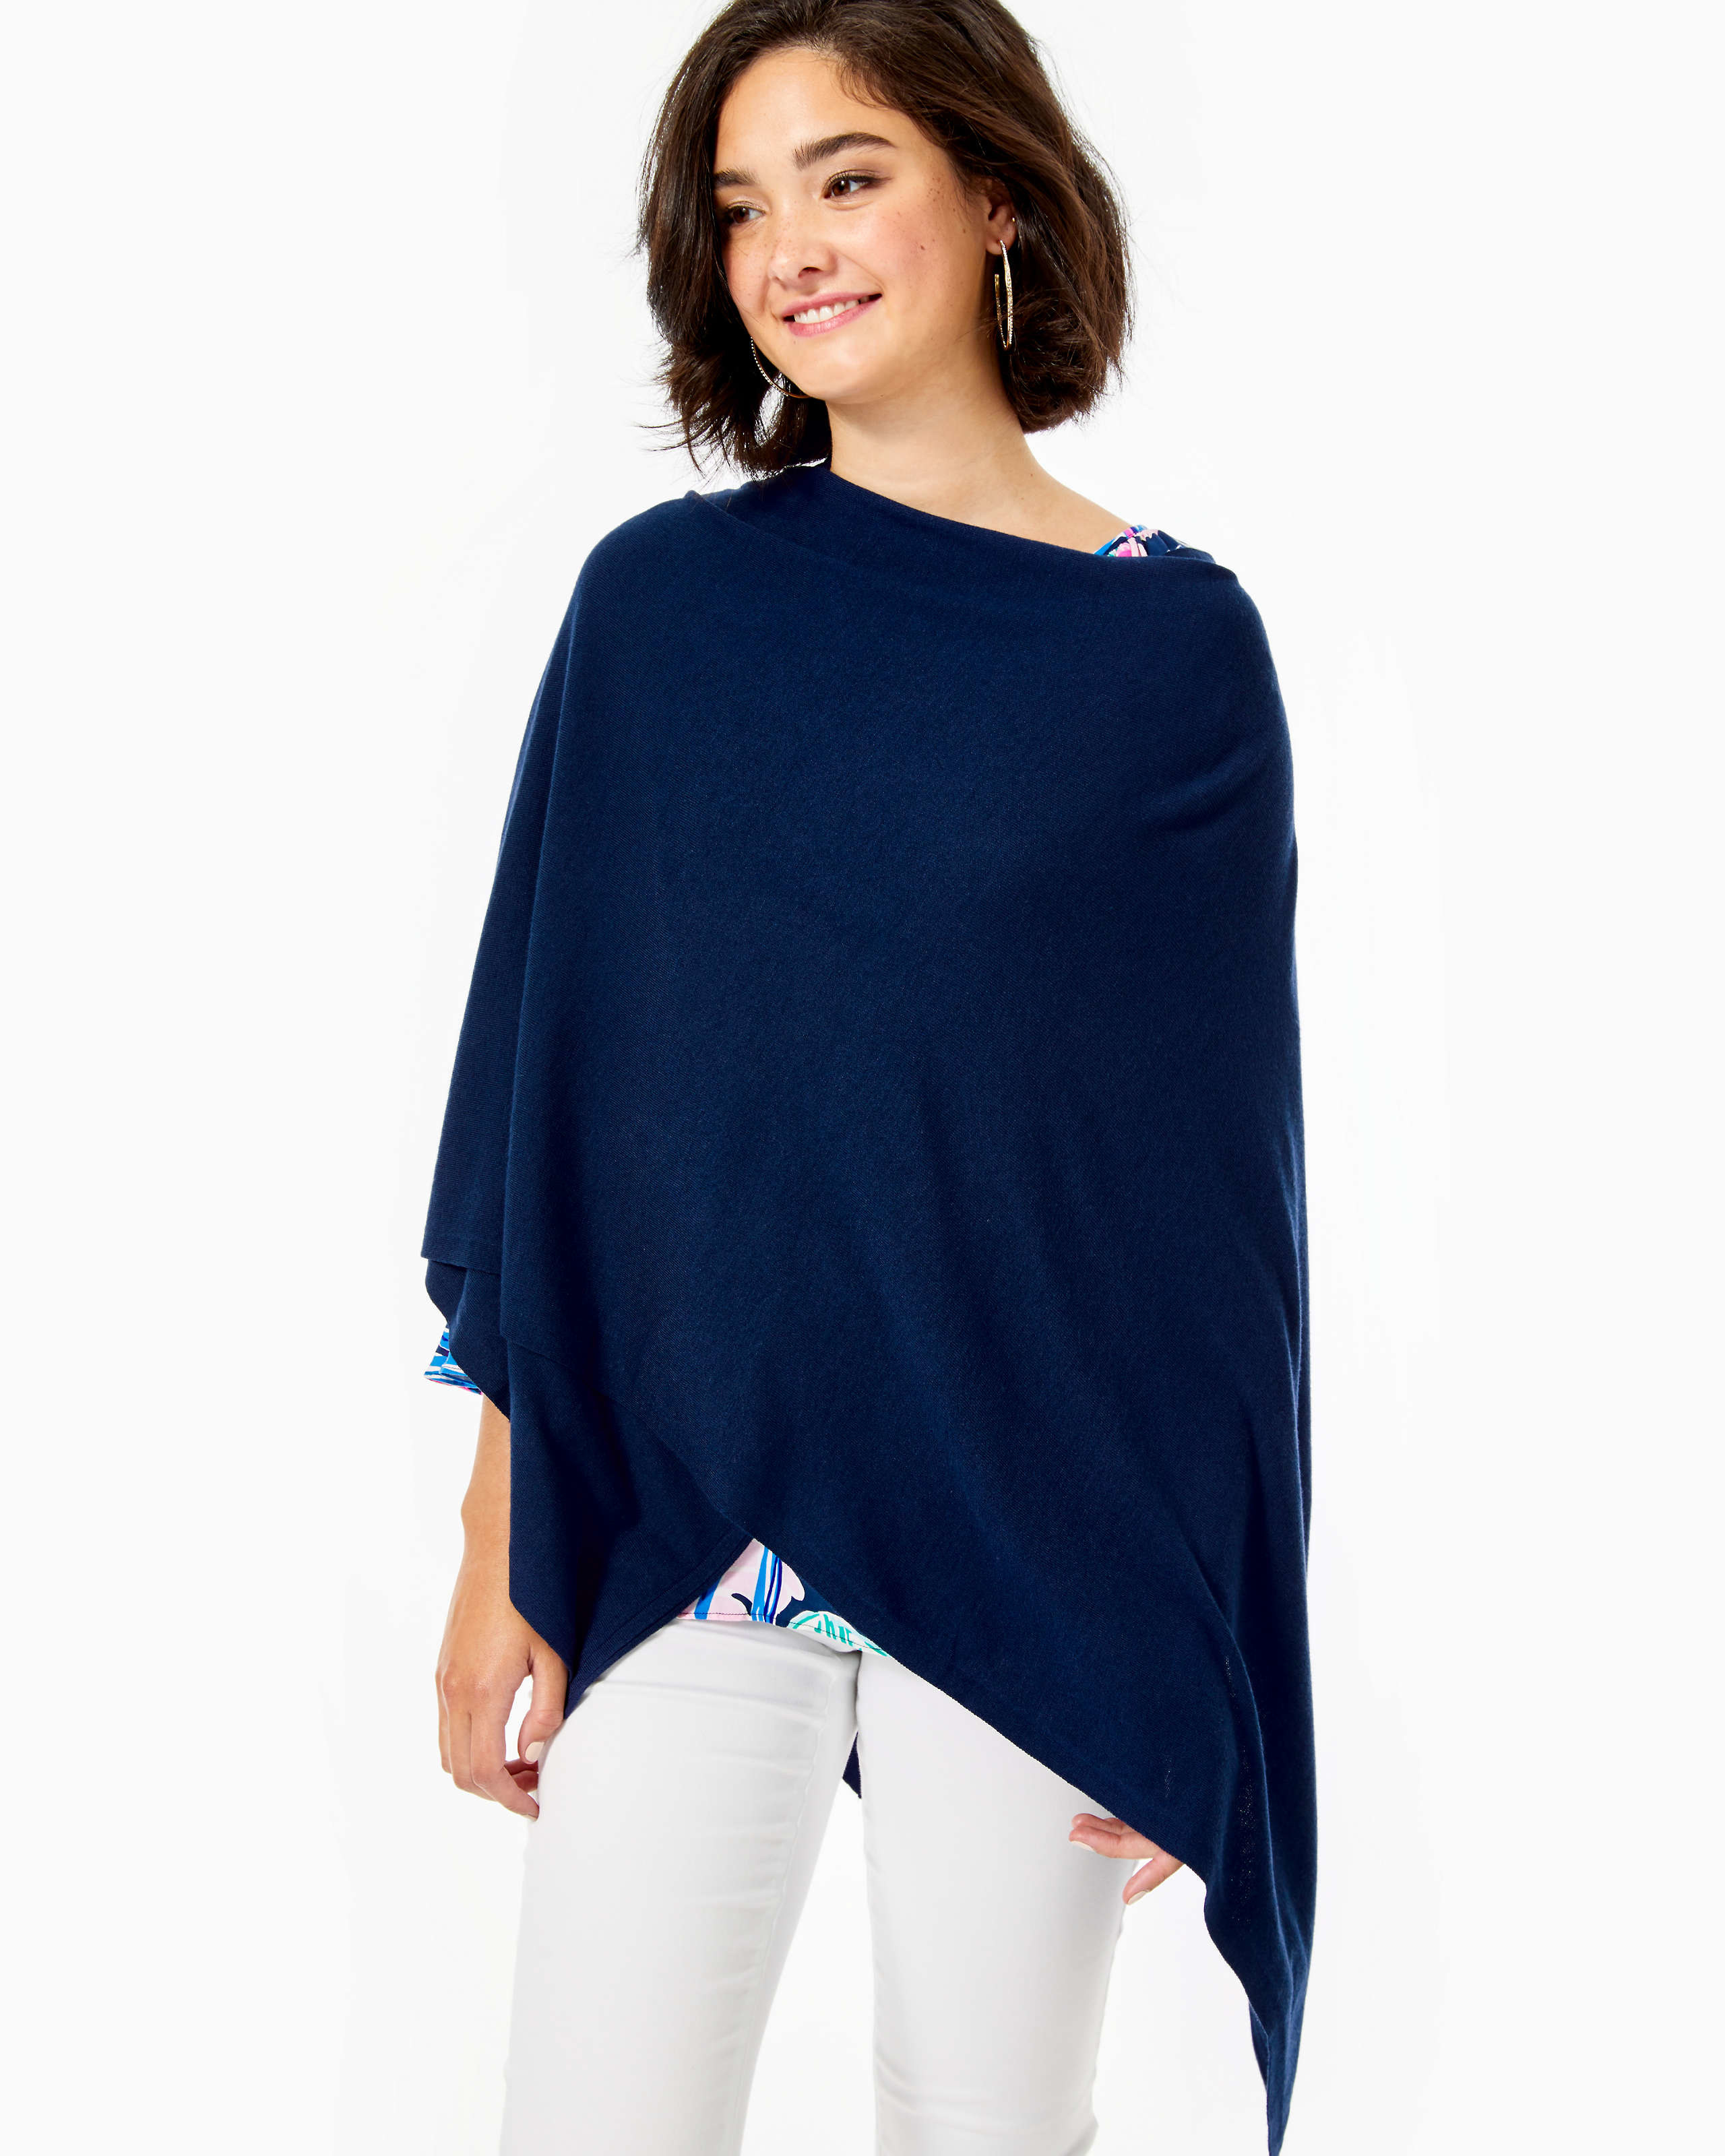 A model wrapped in navy shawl